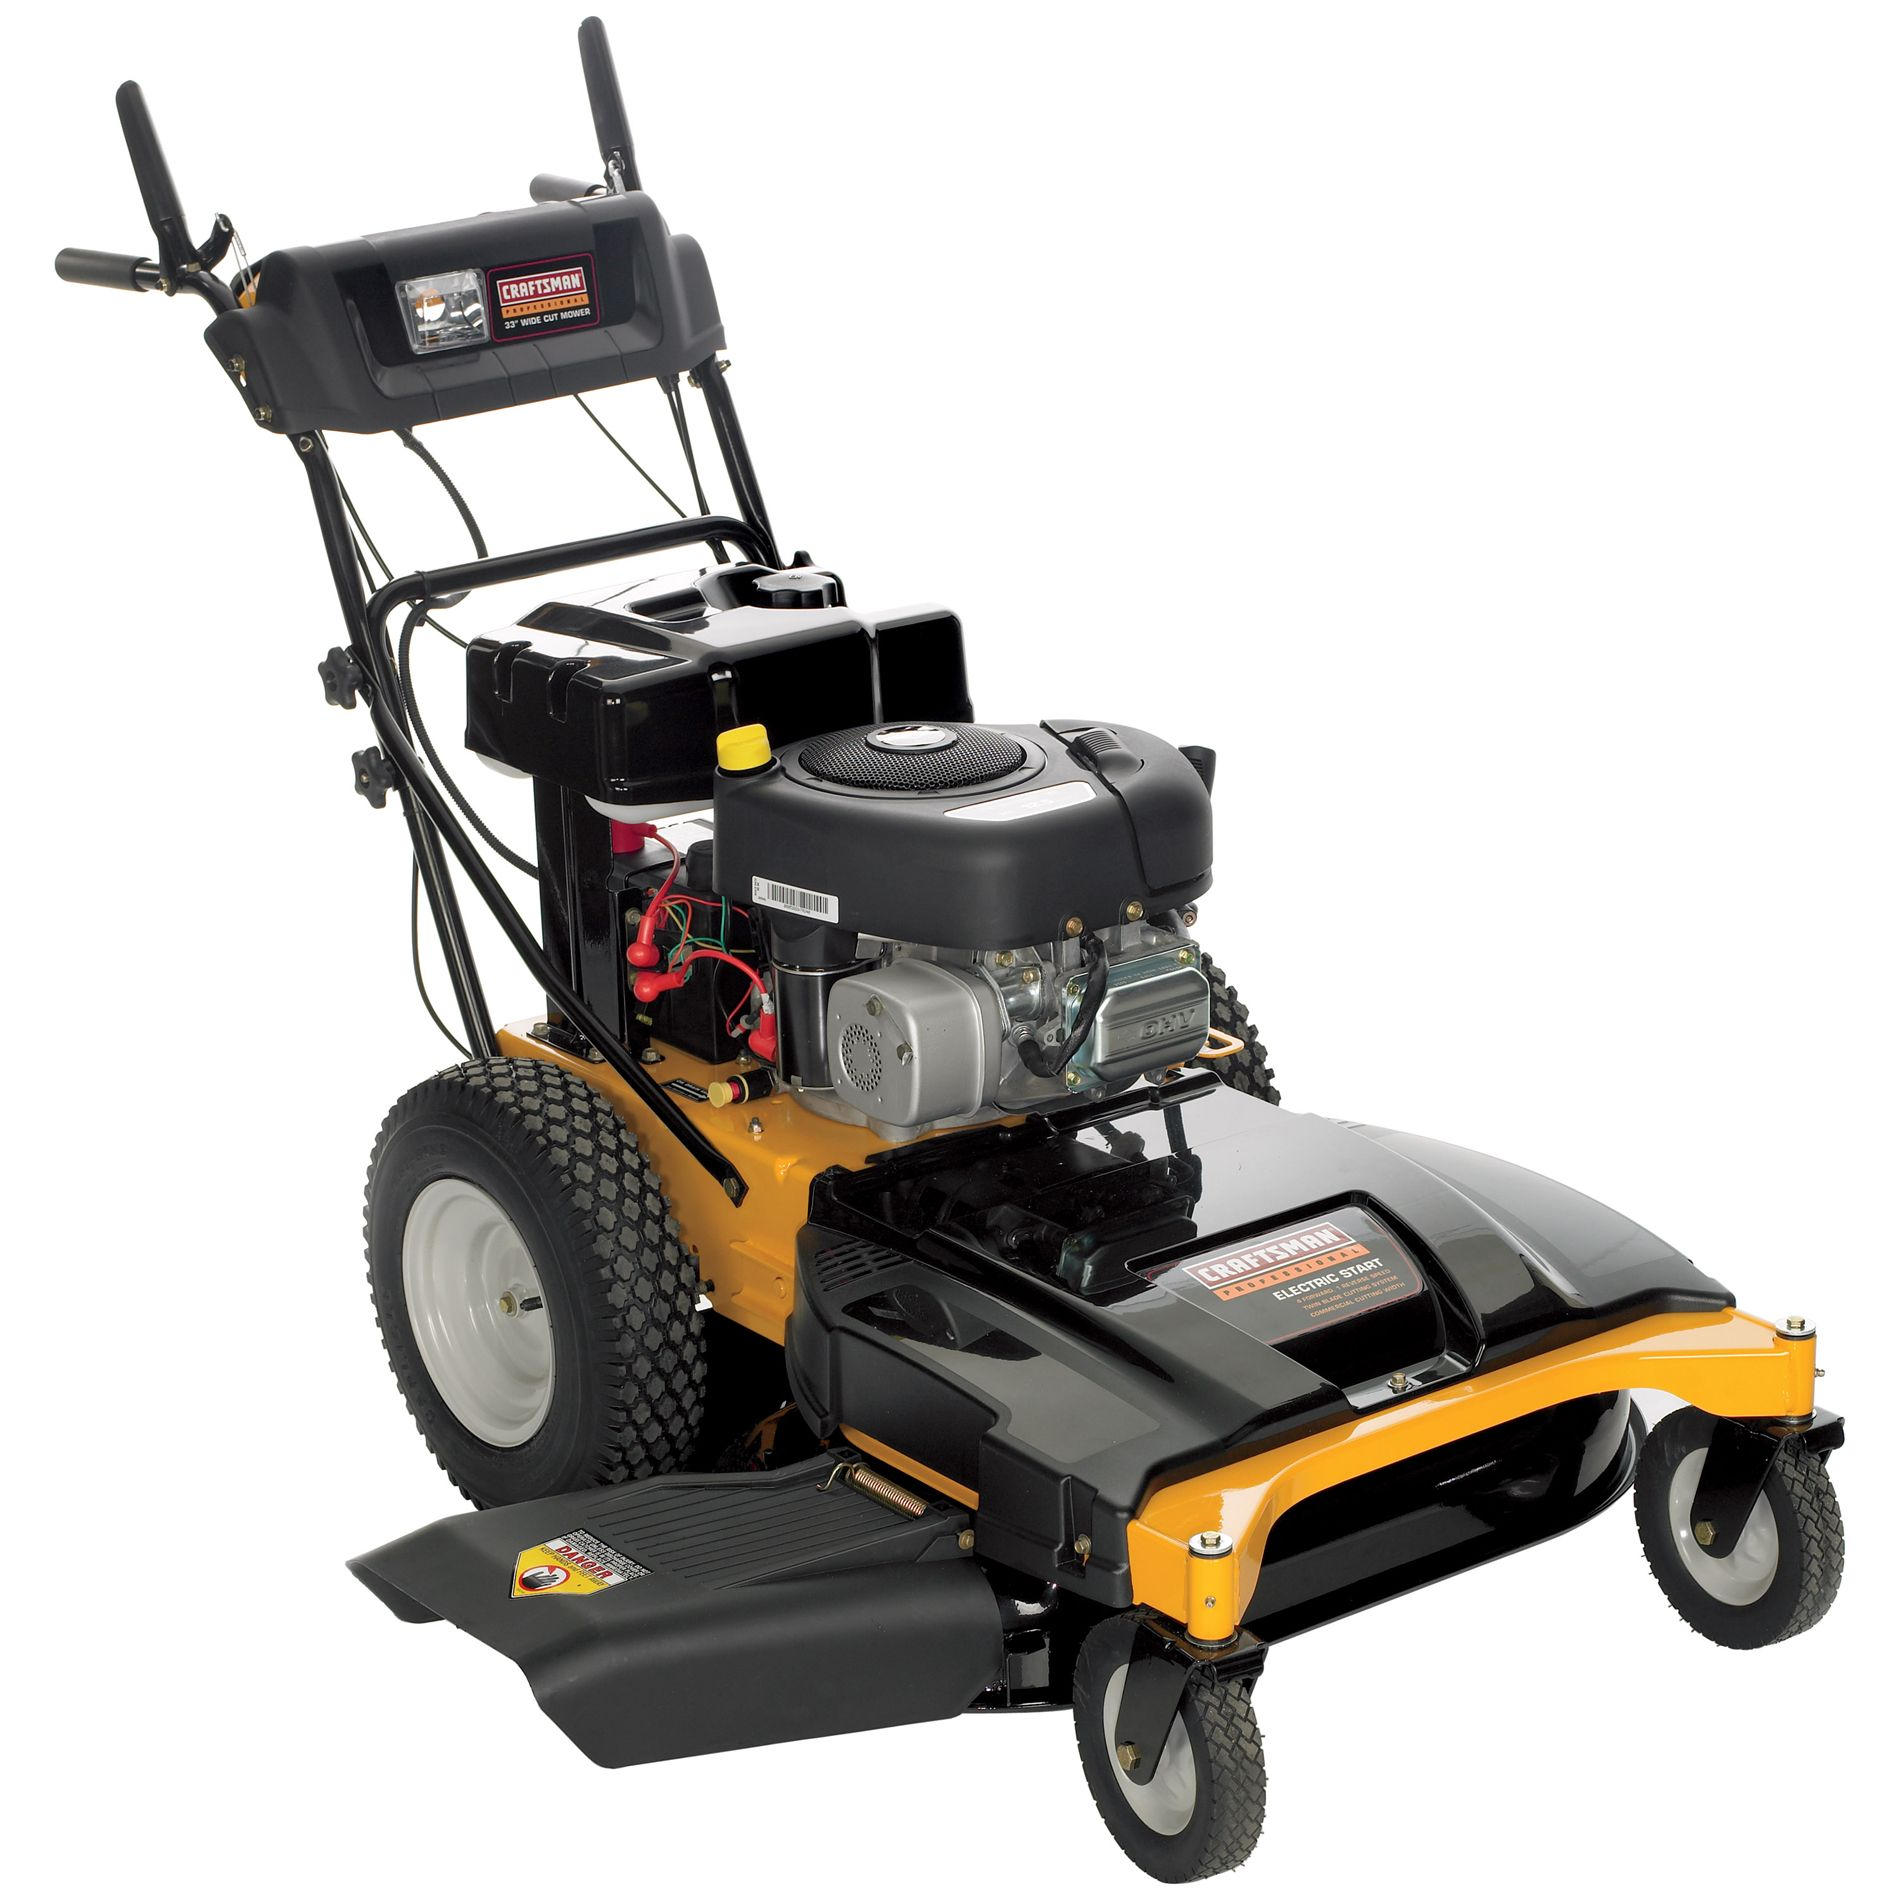 Lawn Mower 33 Inch Self-Propelled 12.5 HP Non CA